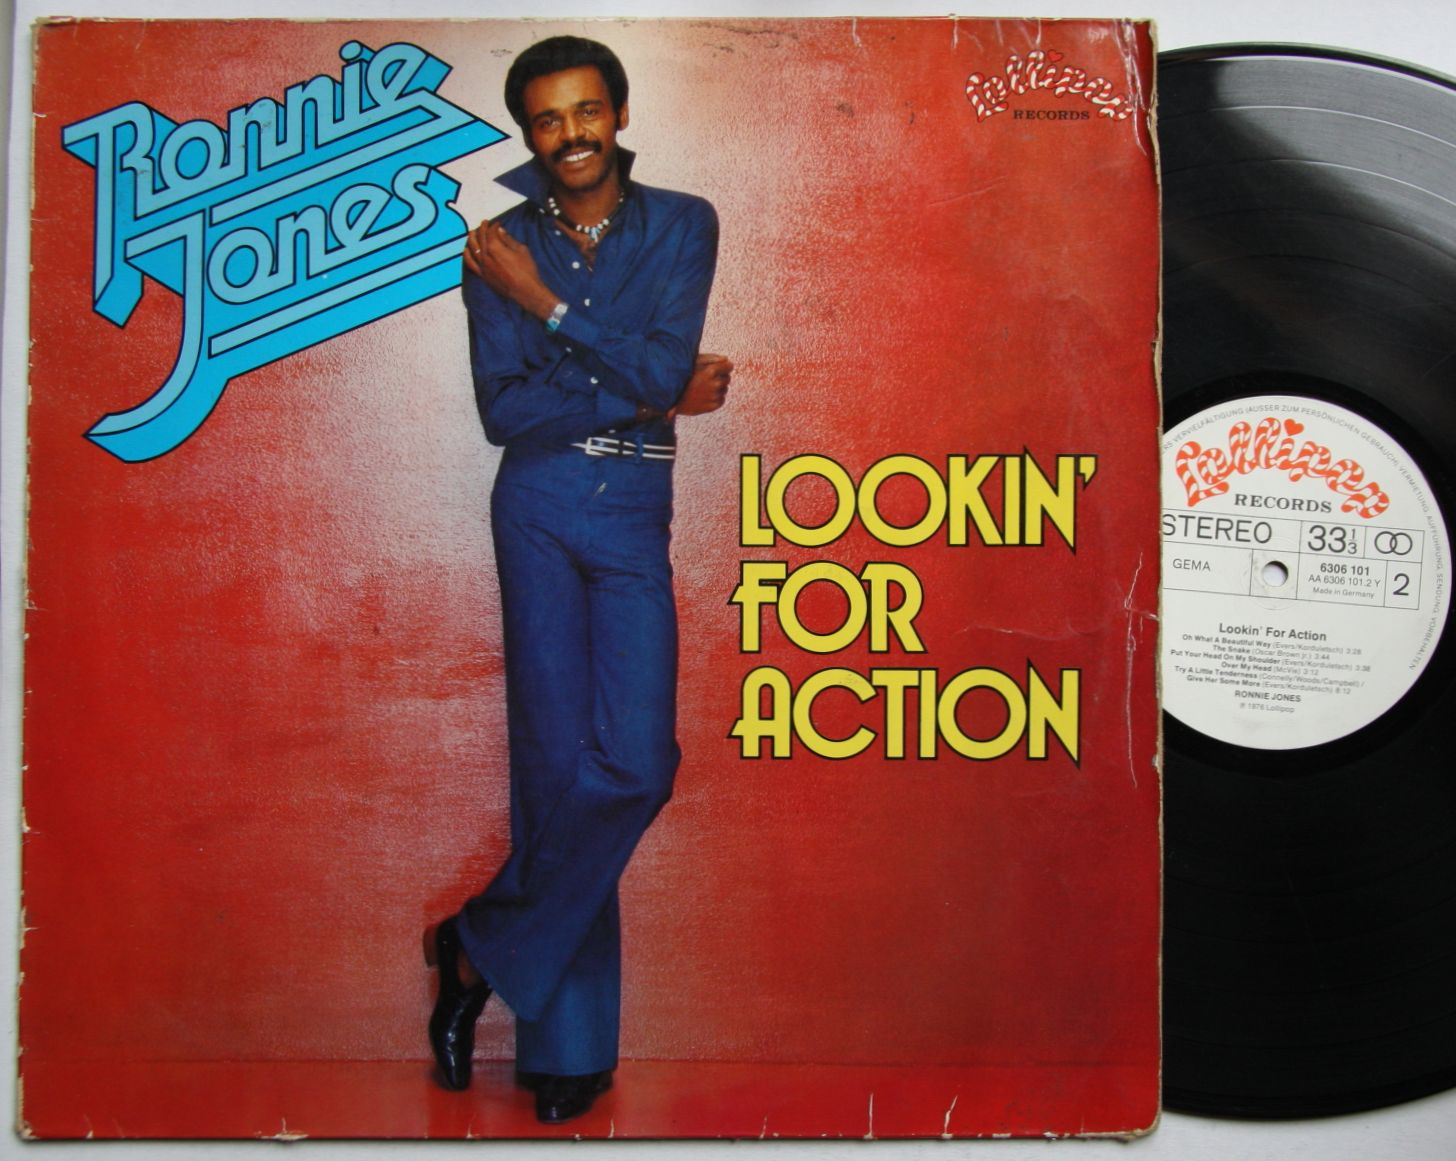 Ronnie Jones - Lookin' For Action